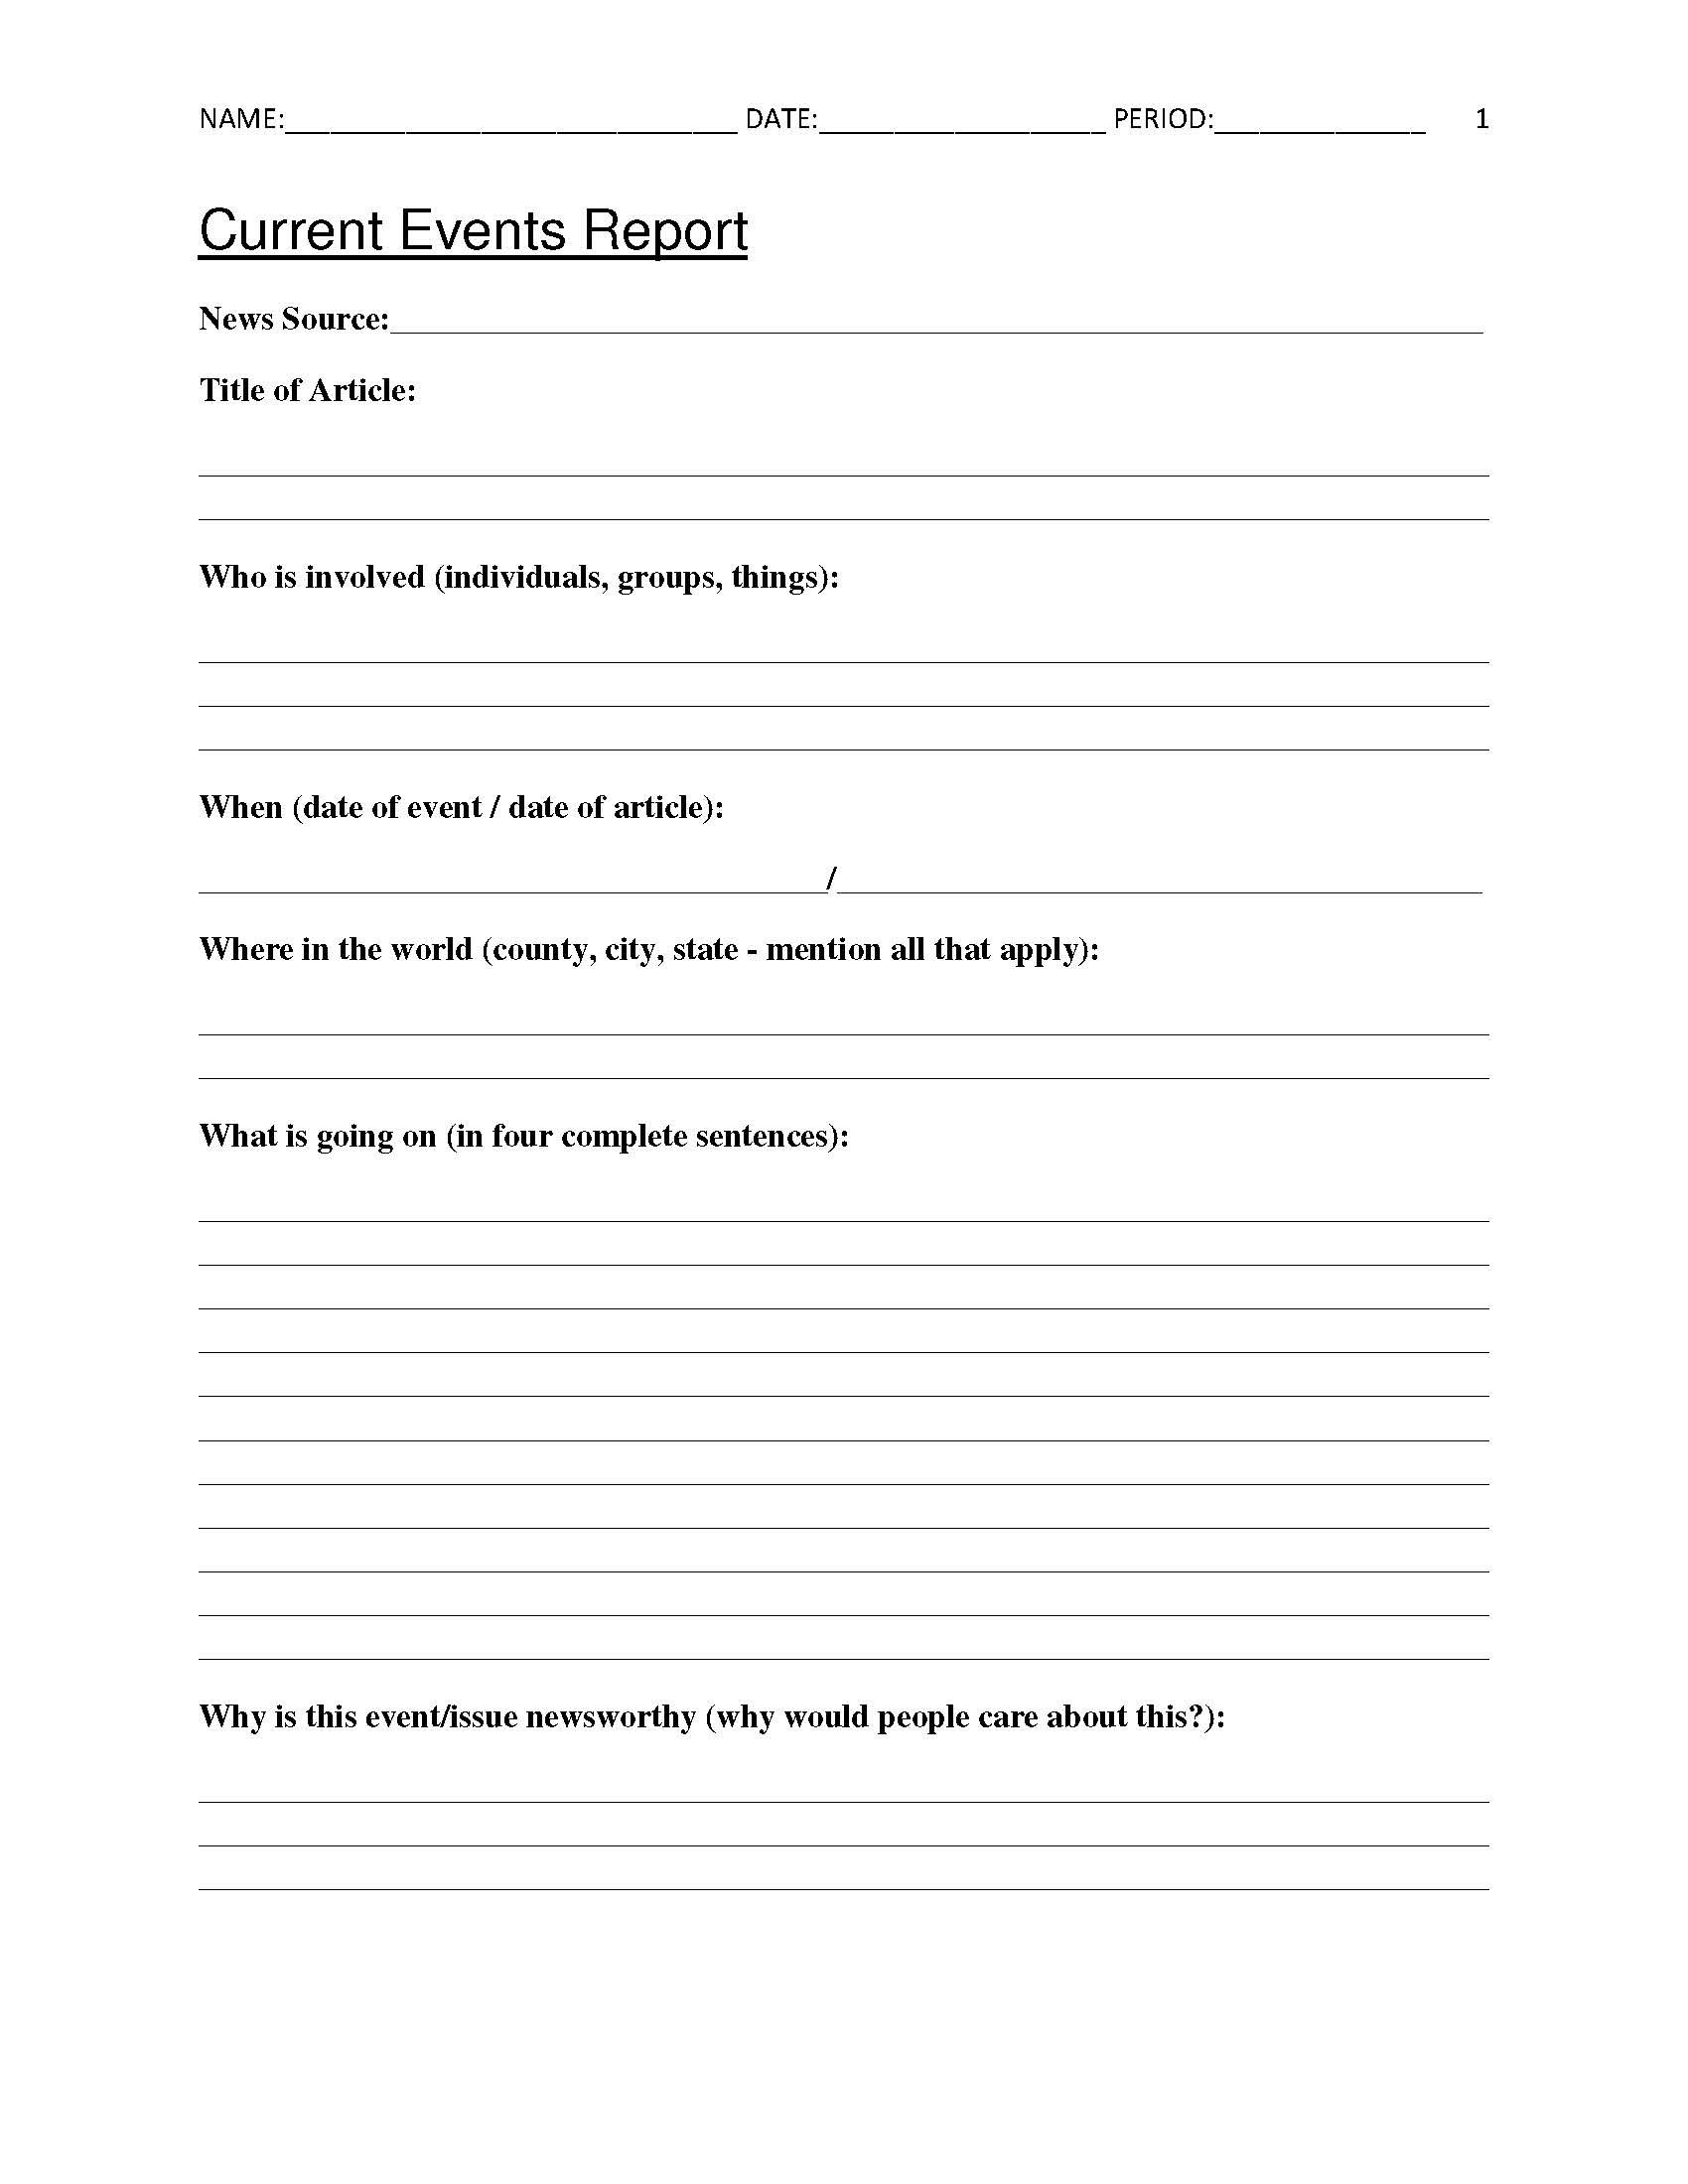 Free Current Events Report Worksheet For Classroom Teachers | Current Events Printable Worksheet